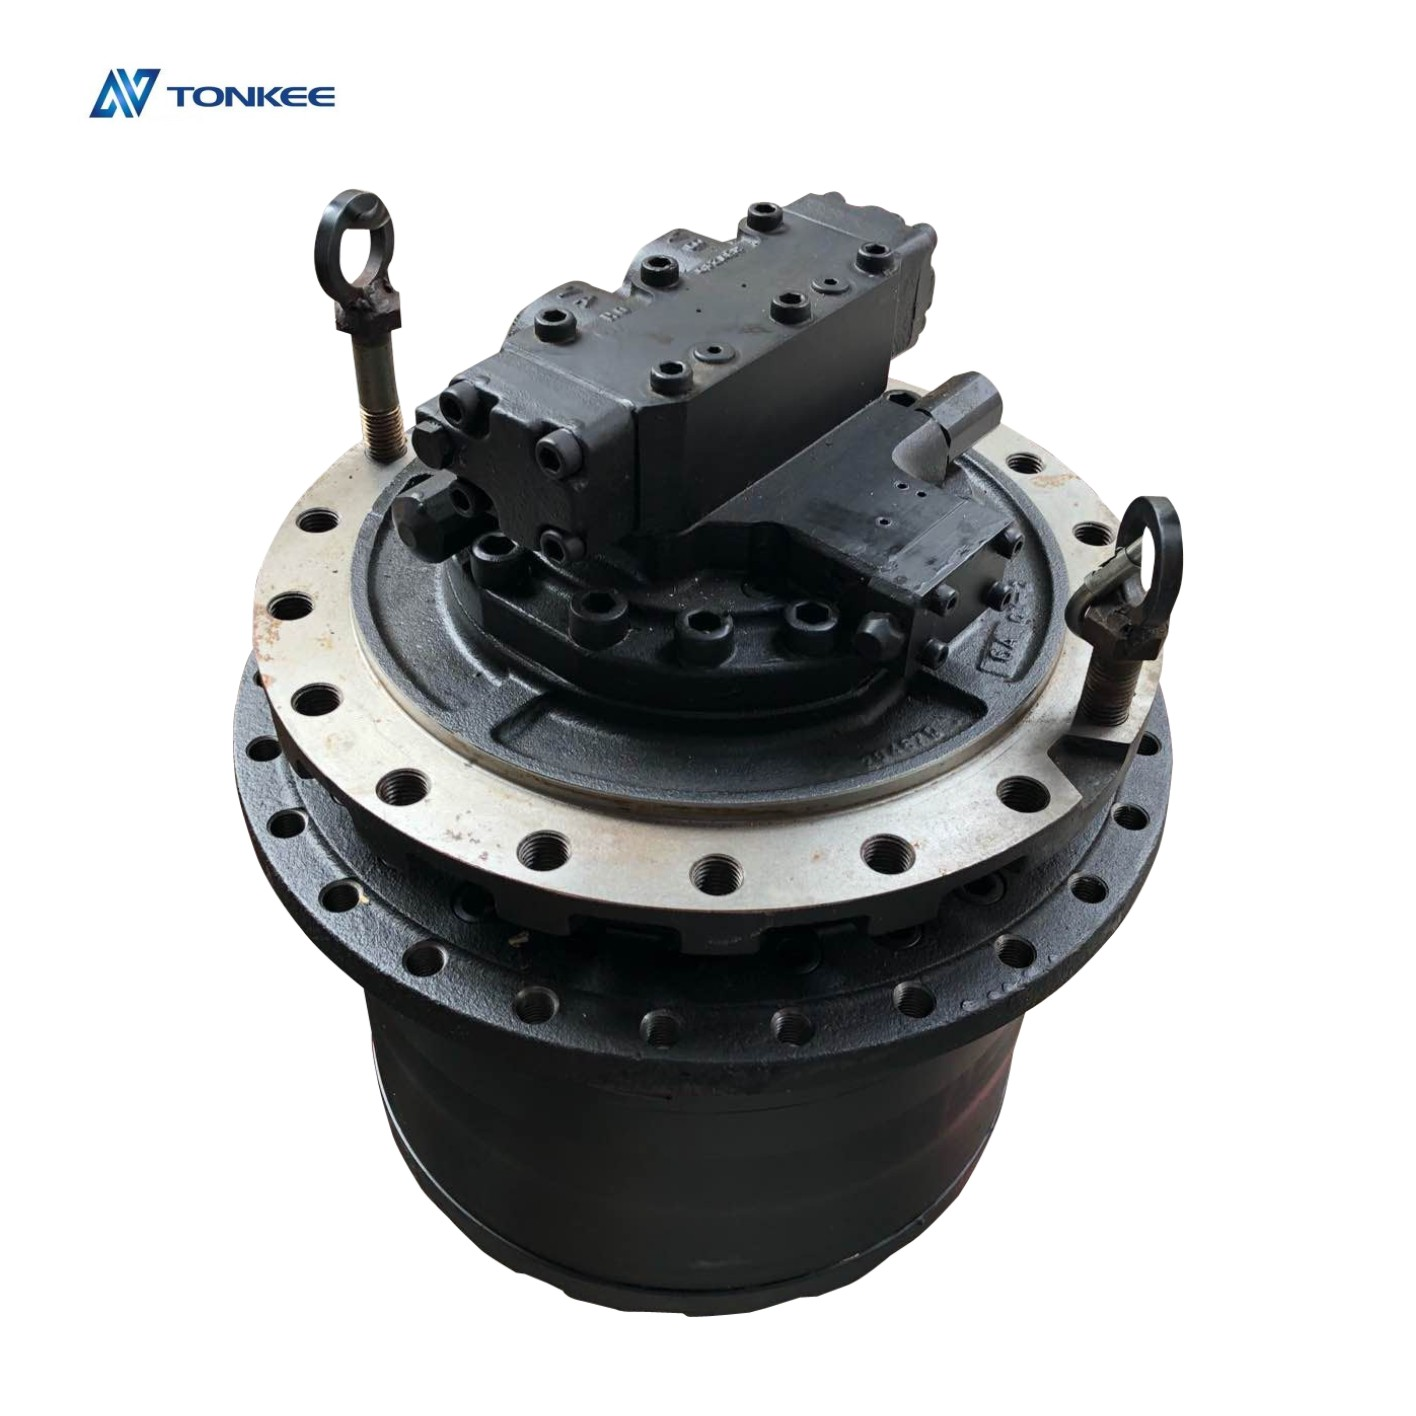 NEW 31N8-40011 final drive R305LC-7 travel motor assy  R305-7 travel motor assy for HYUNDAI excavator